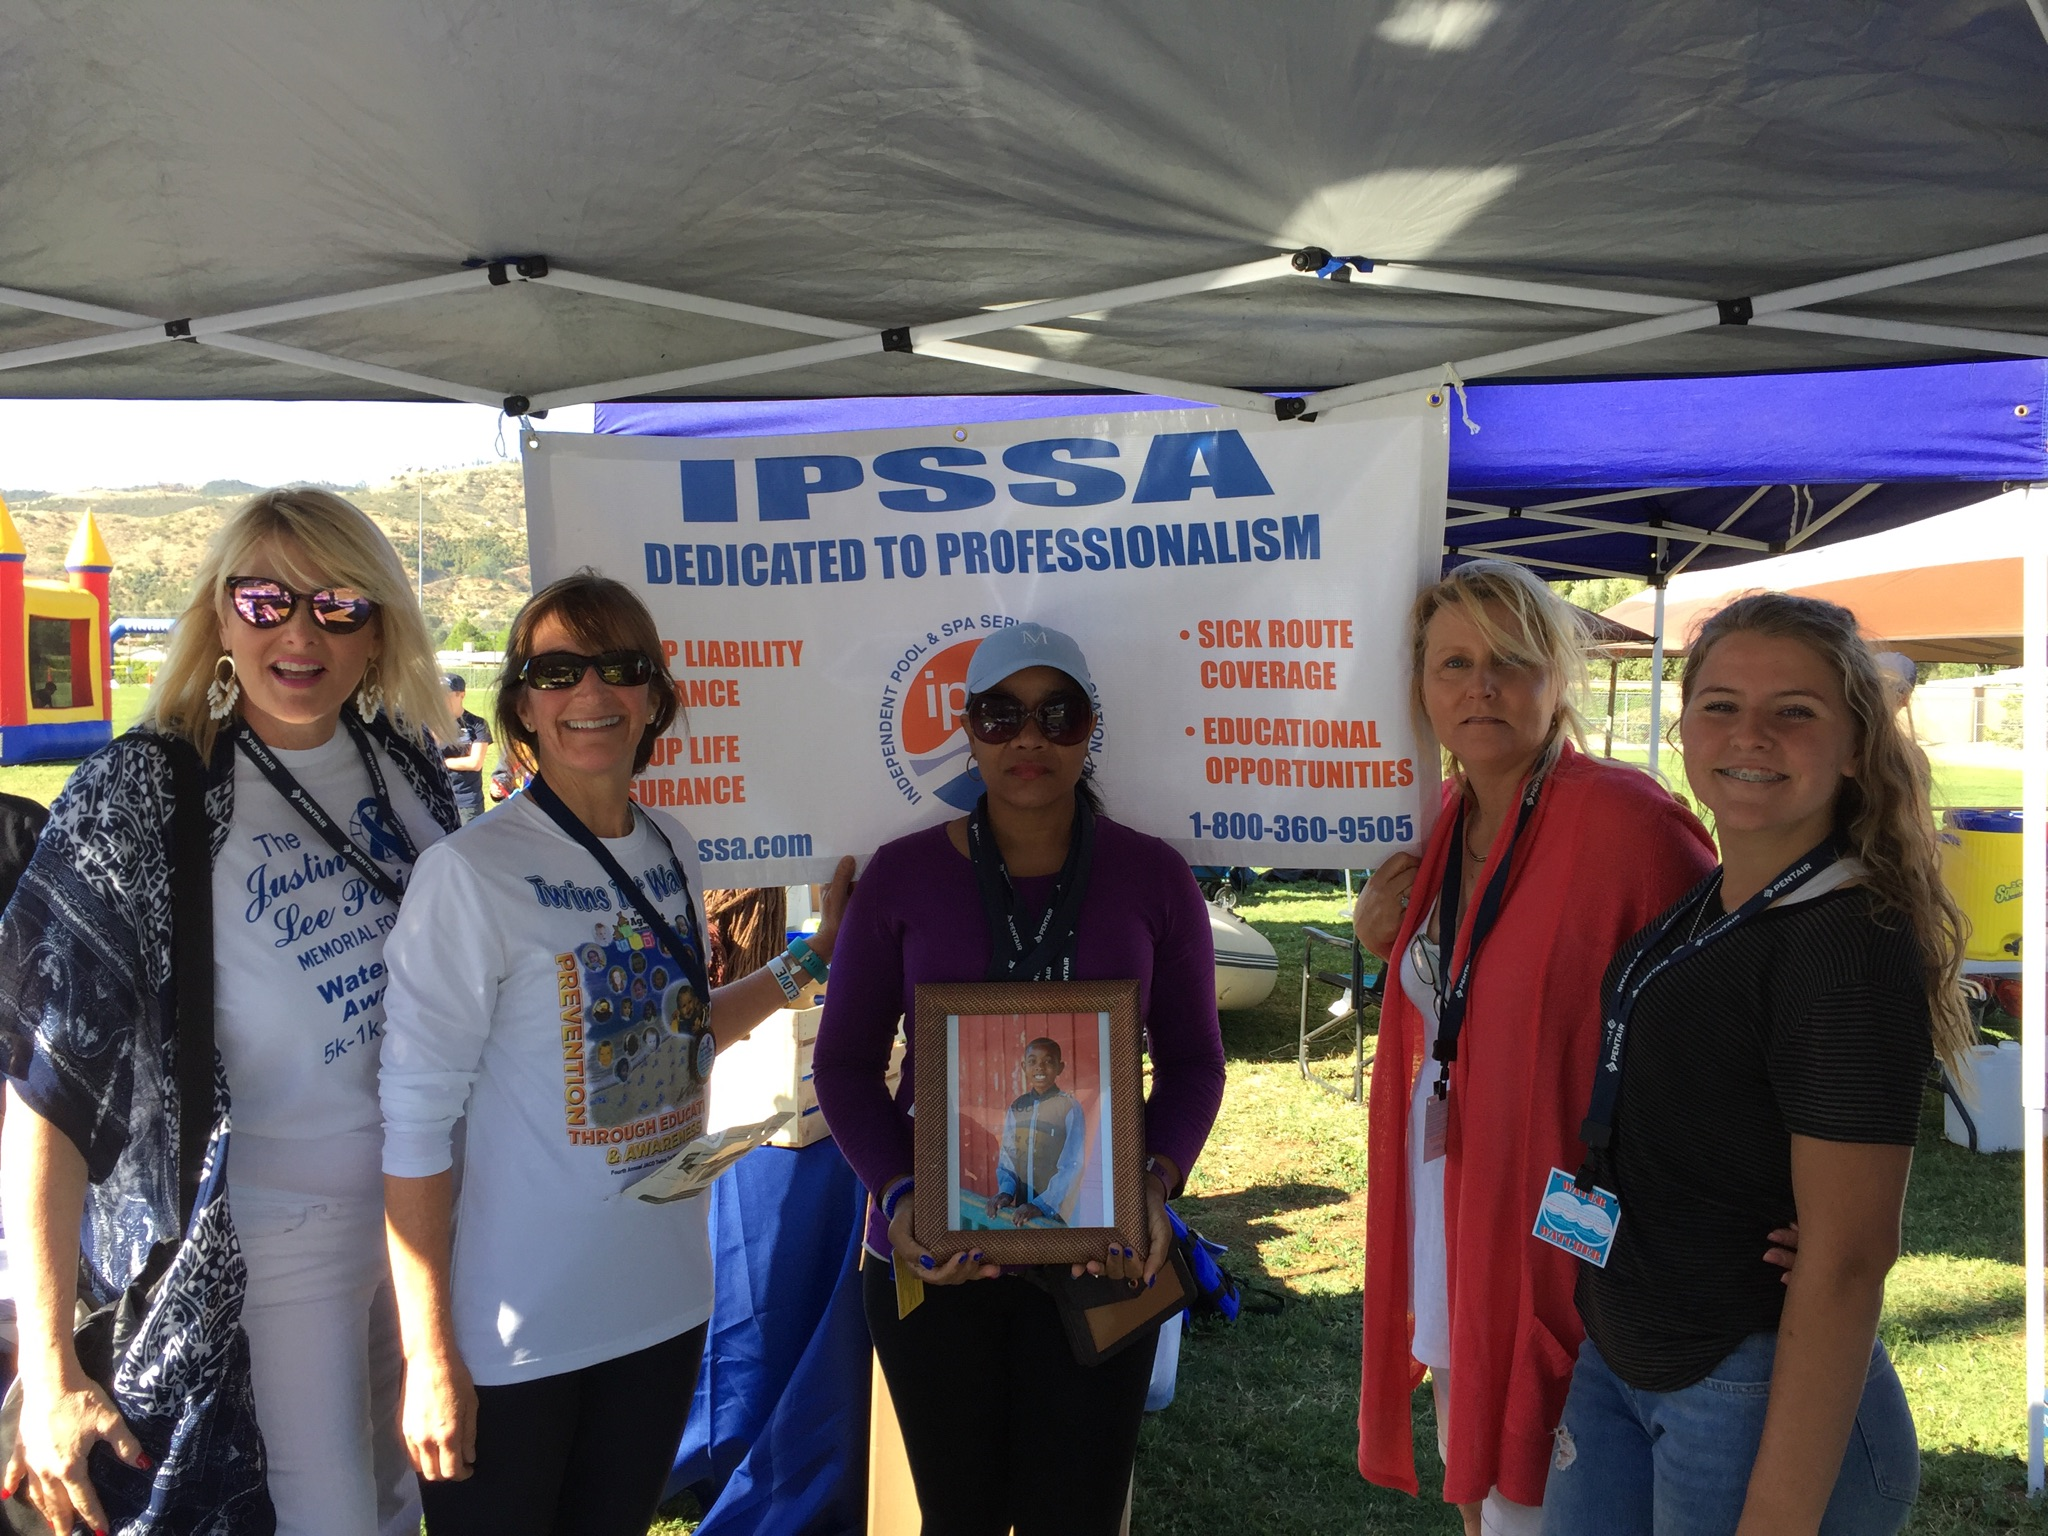 group of women standing in front of an i.p.s.s.a banner with a photograph of a young boy.